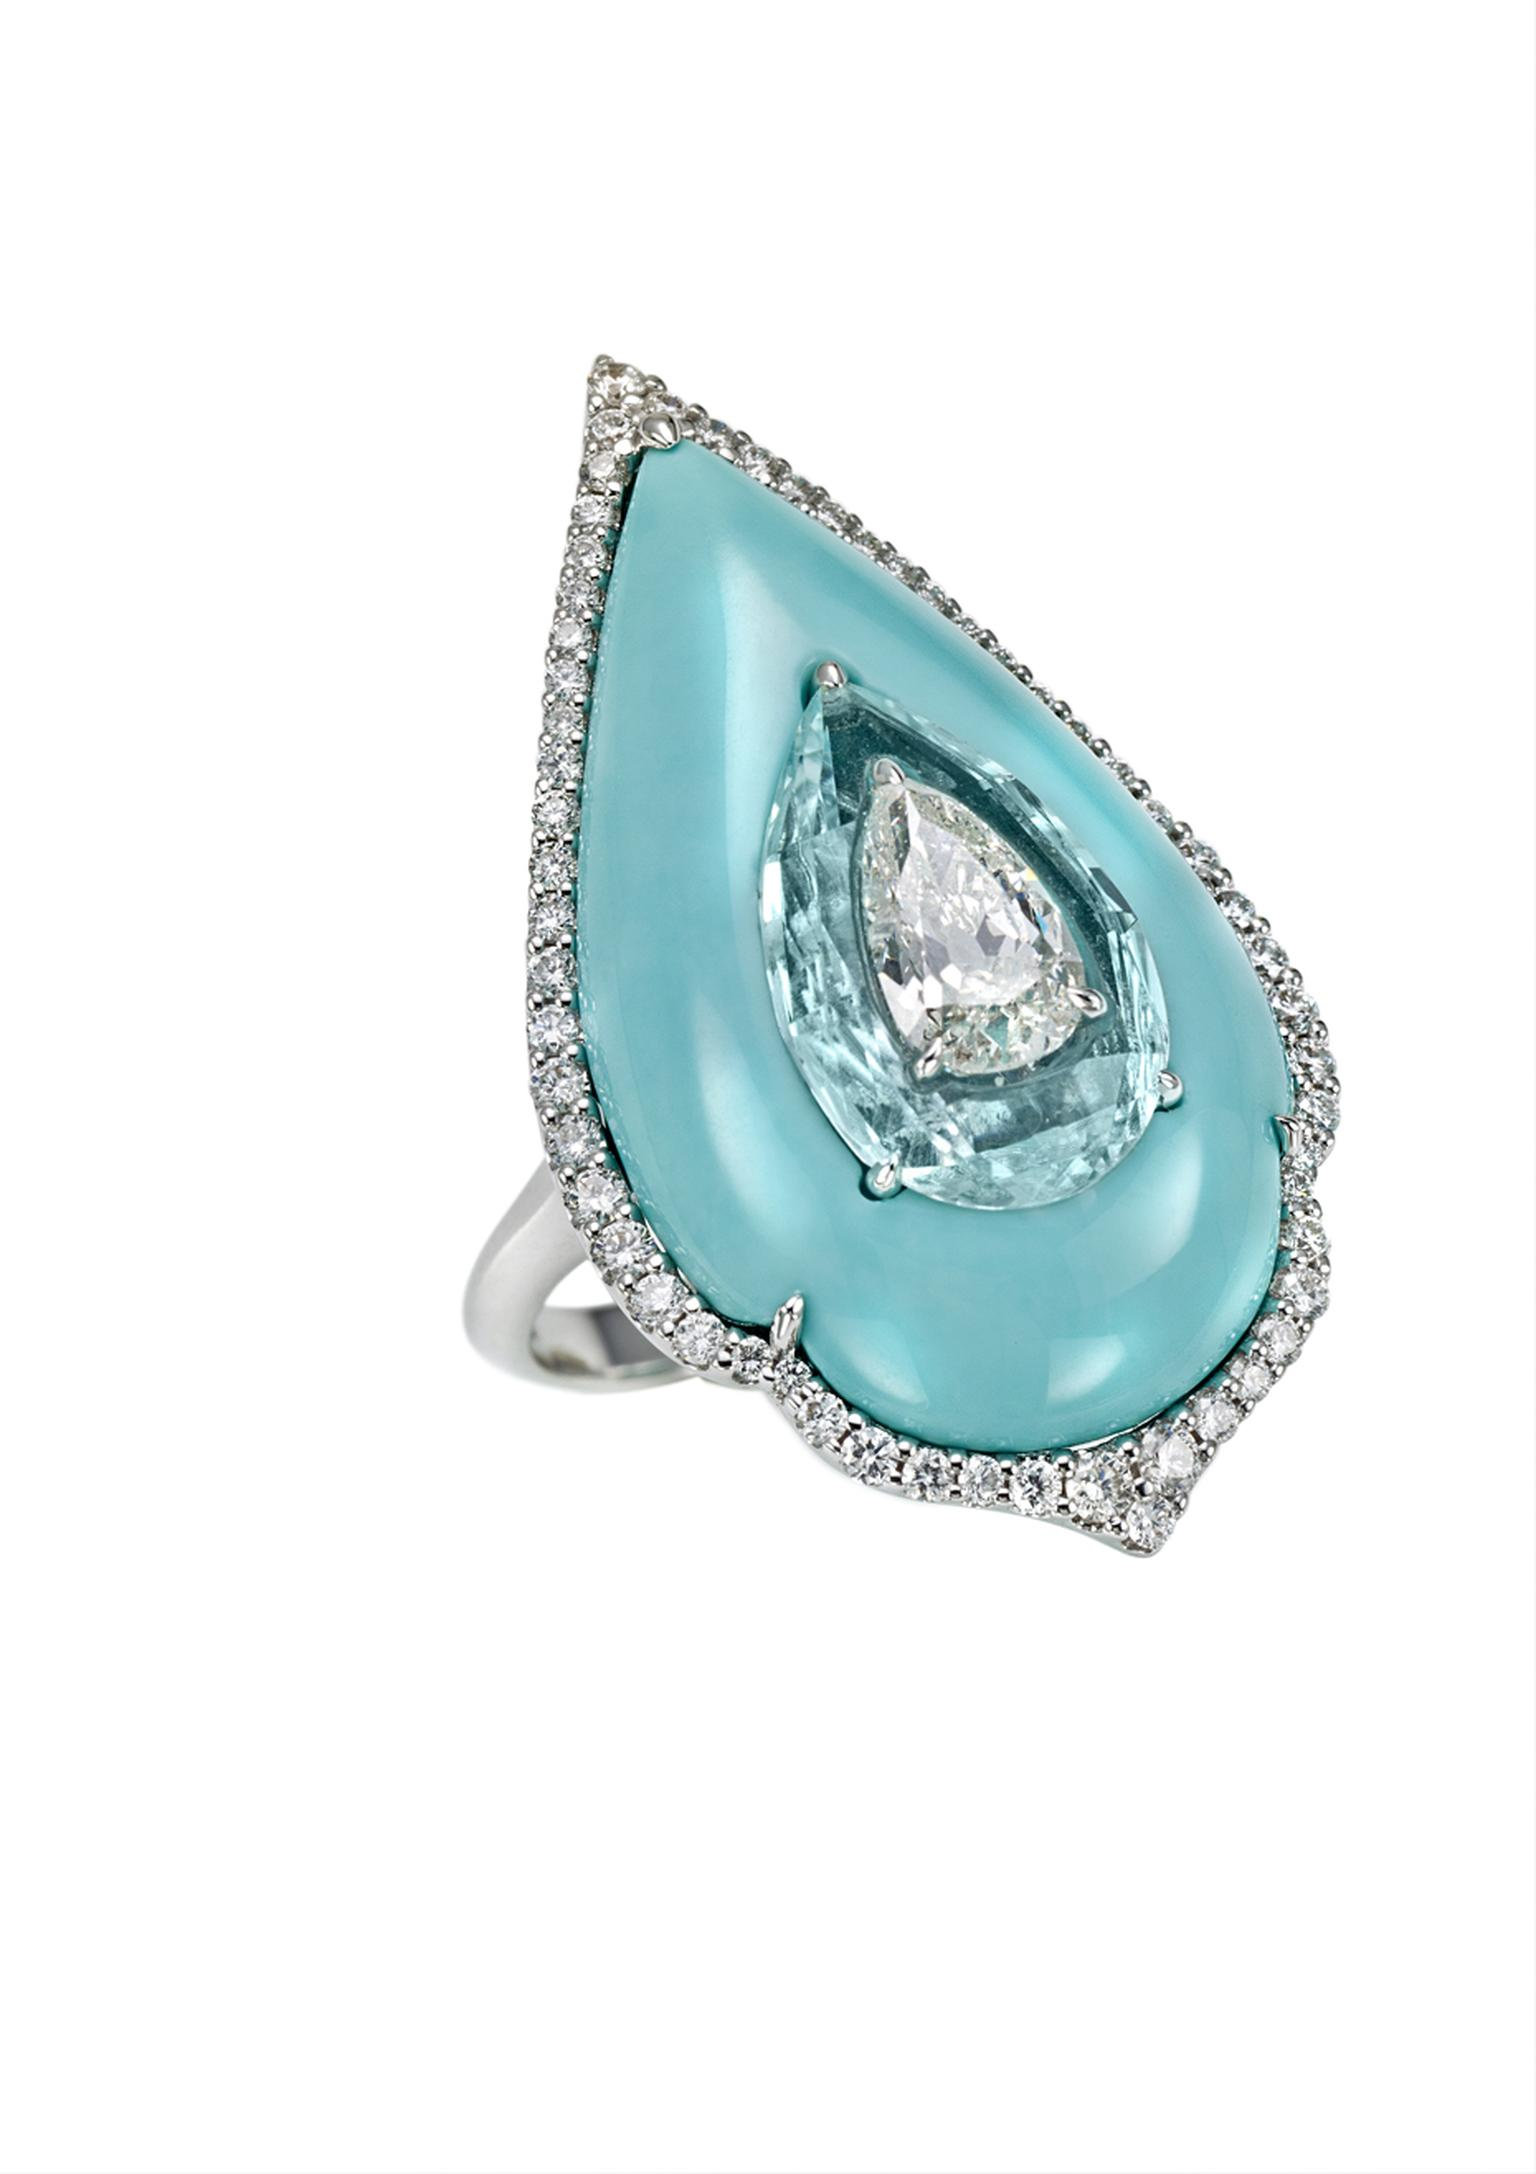 Boghossian diamond inlaid into Paraiba tourmaline, inlaid into turquoise ring